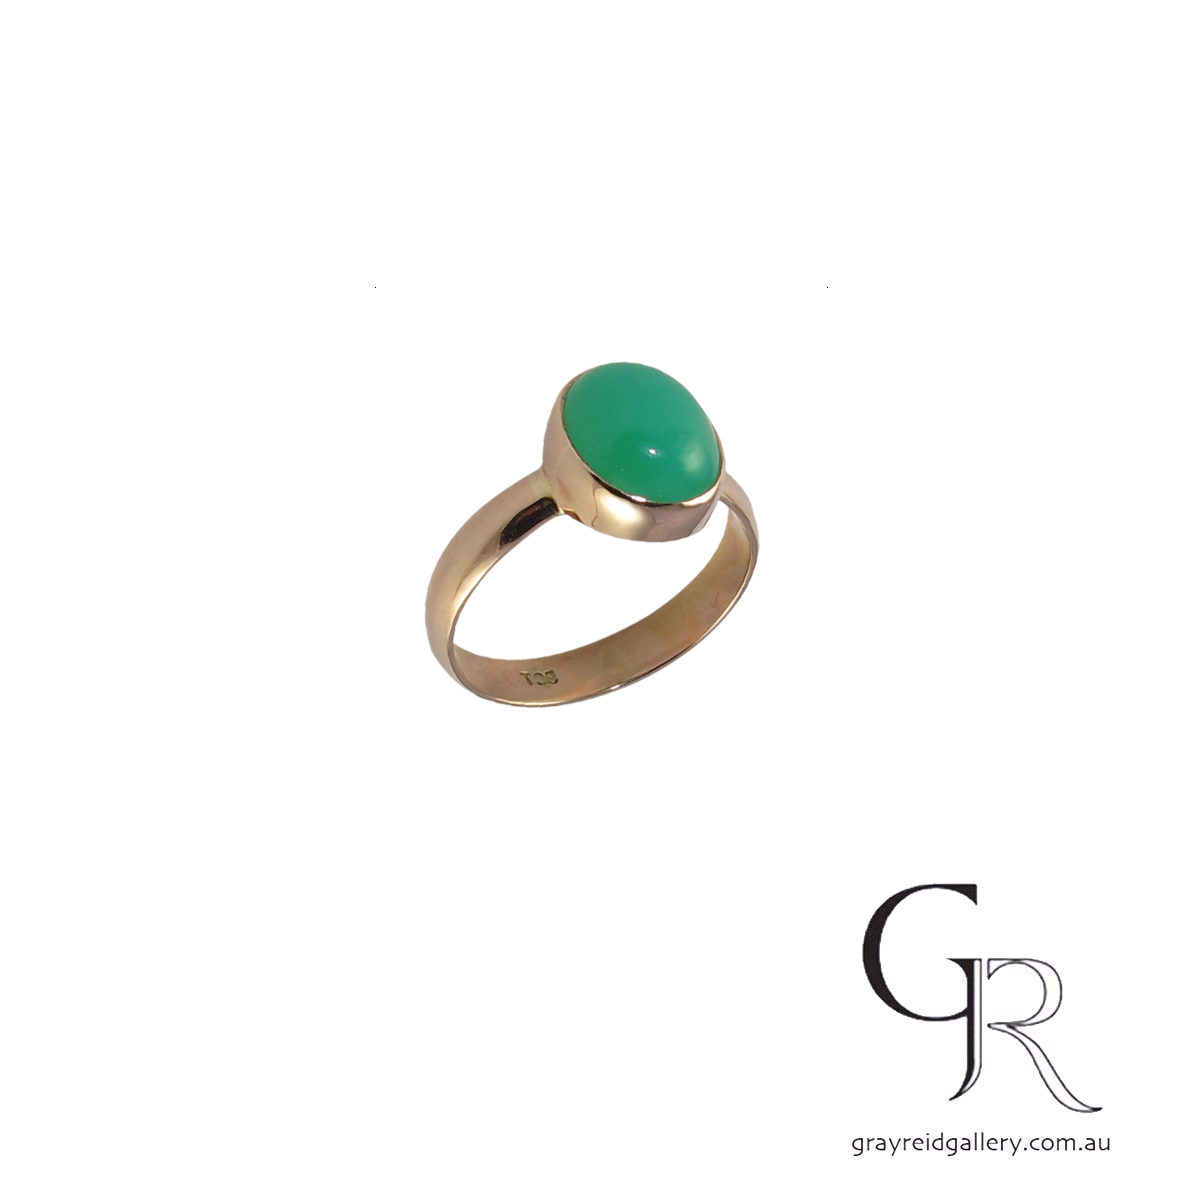 custom made 9ct gold chrysoprase ring gray reid gallery 6535 B $490.jpg